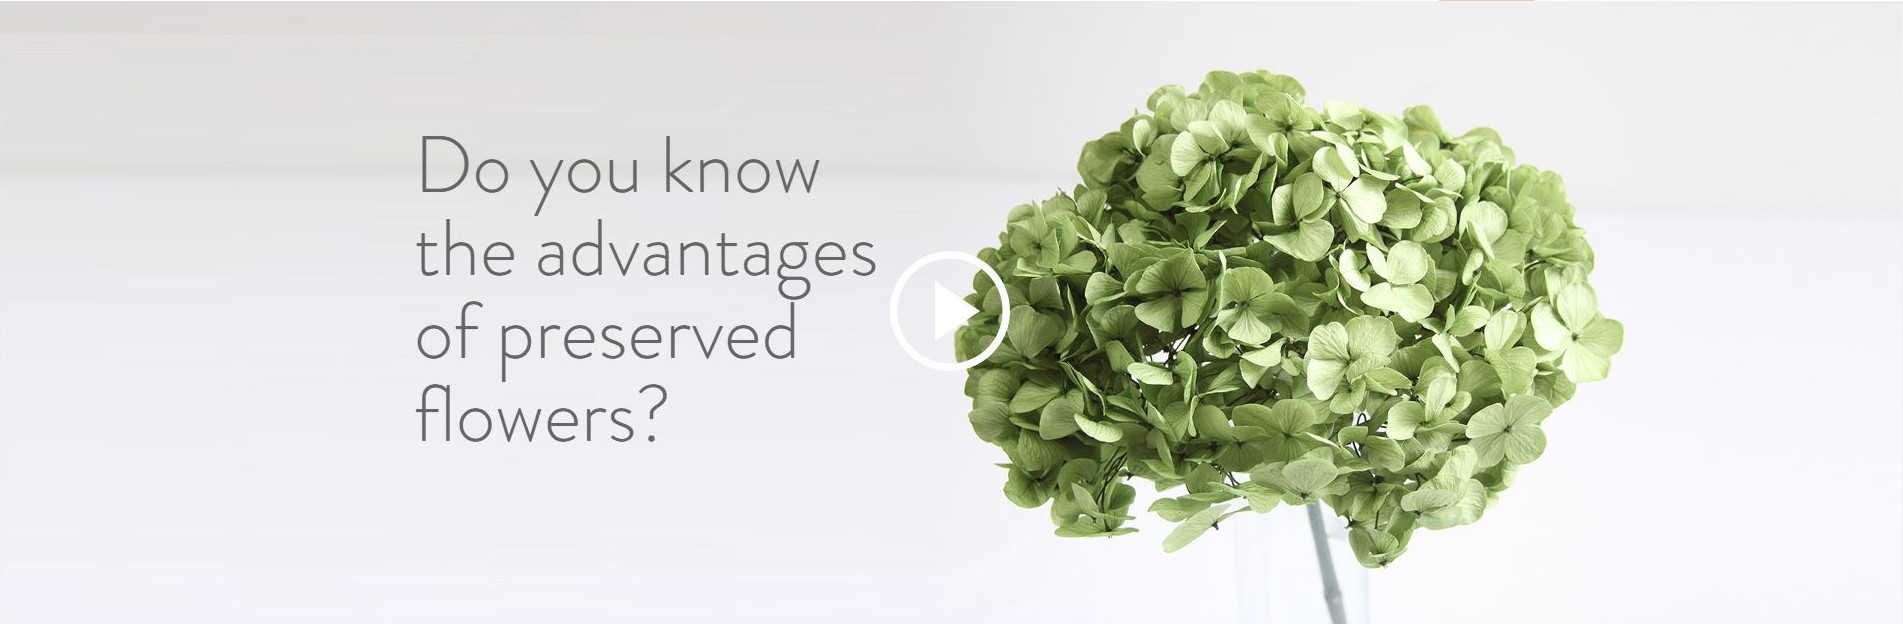 Do you know the advantages of preserved flowers?